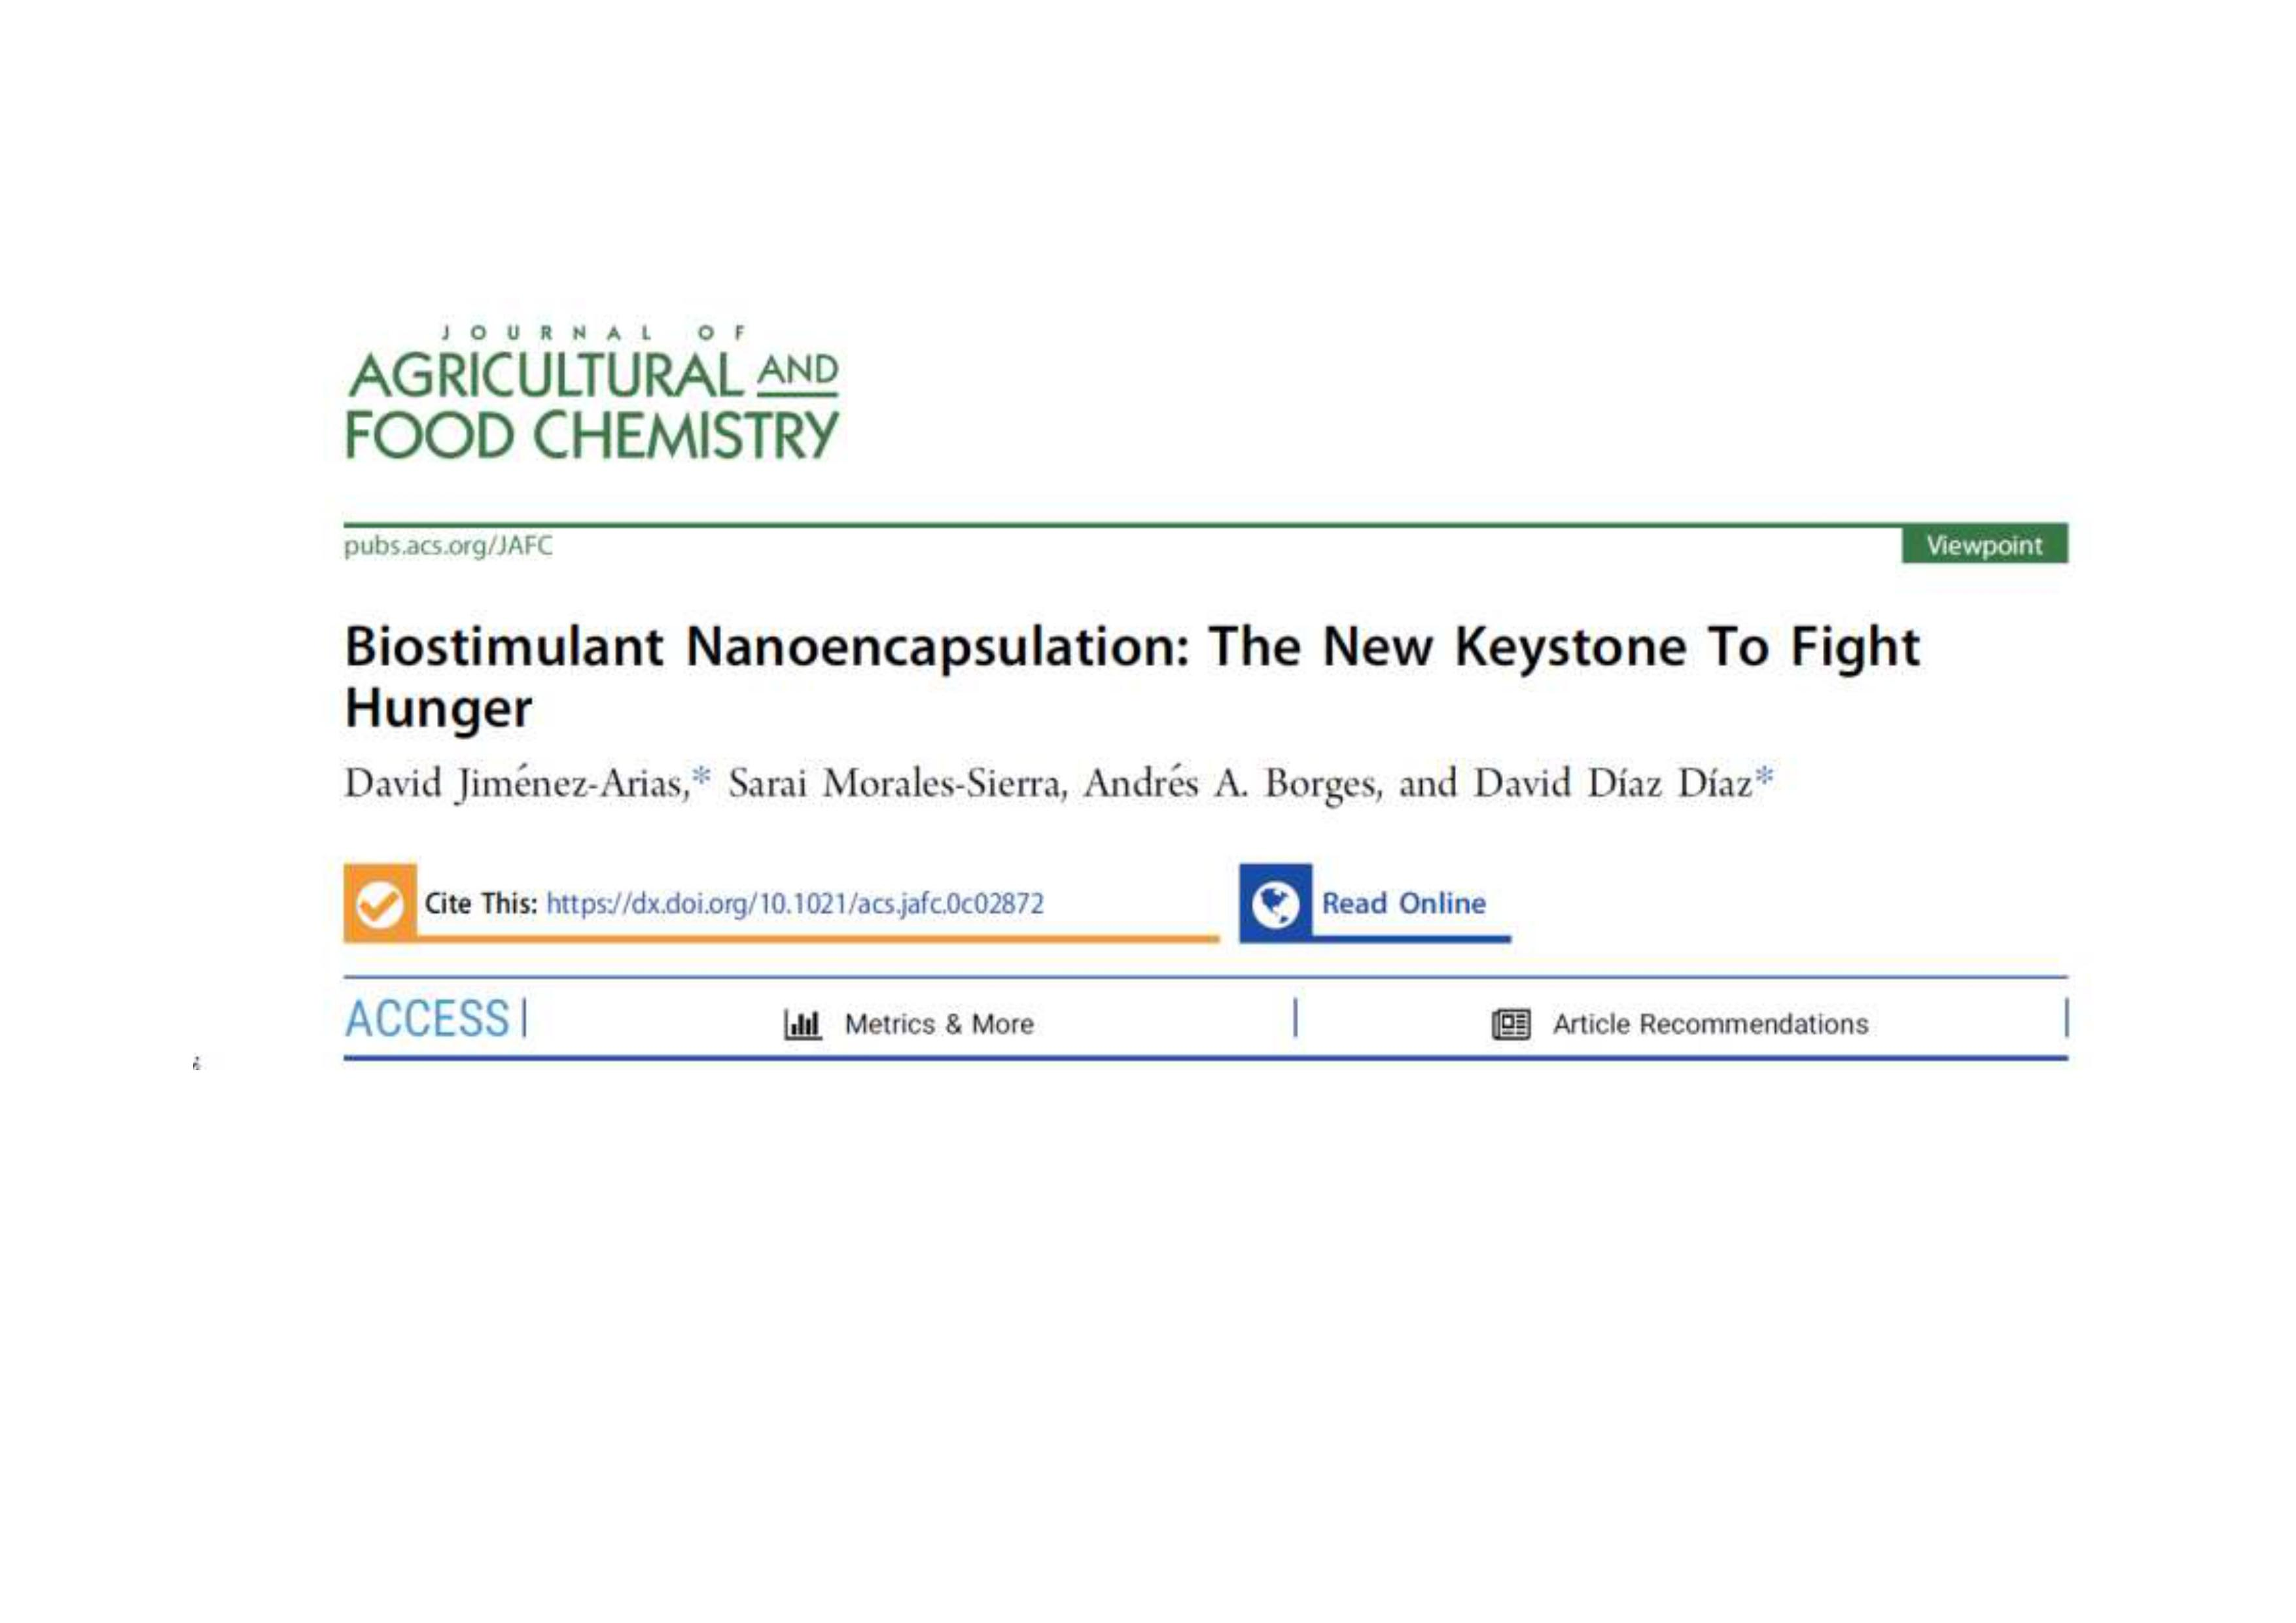 Biostimulant Nanoencapsulation: The New Keystone to Fight Hunger